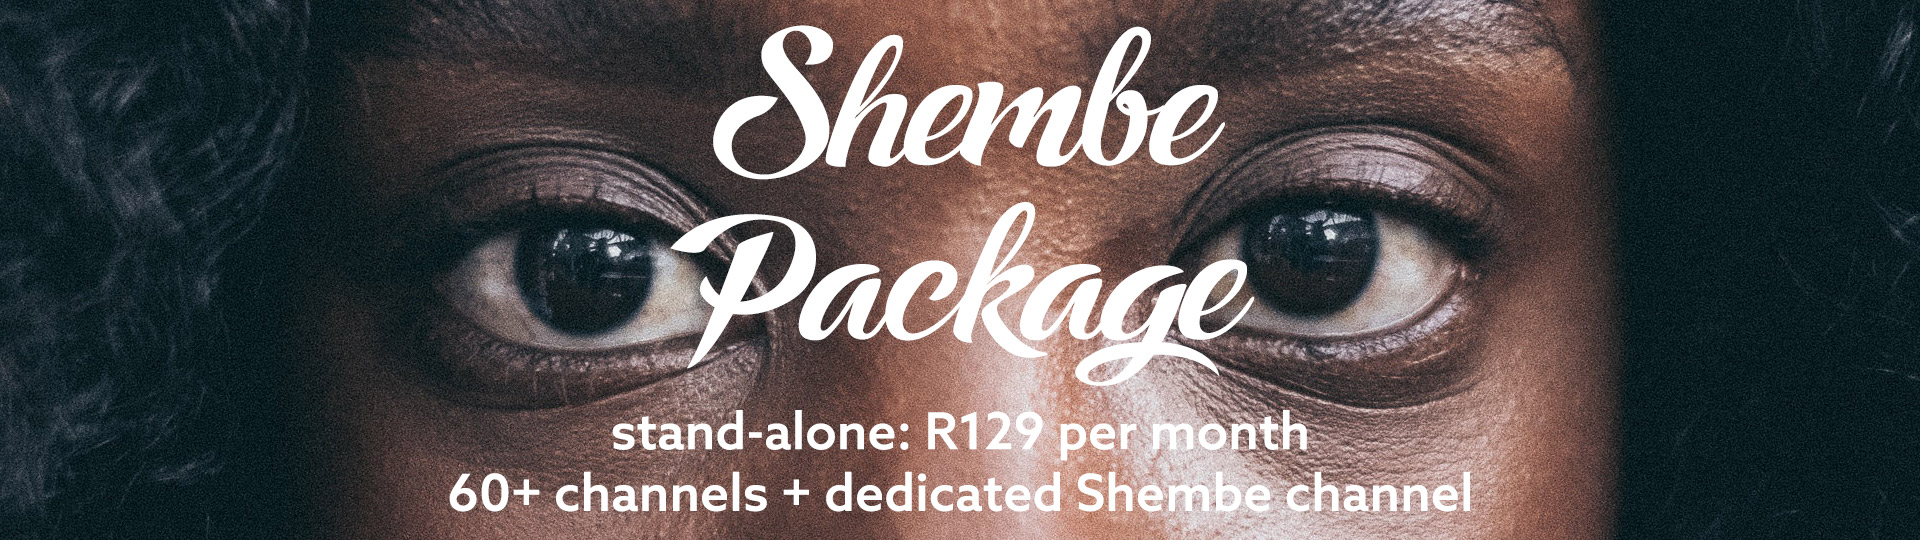 Shembe Package rectangle